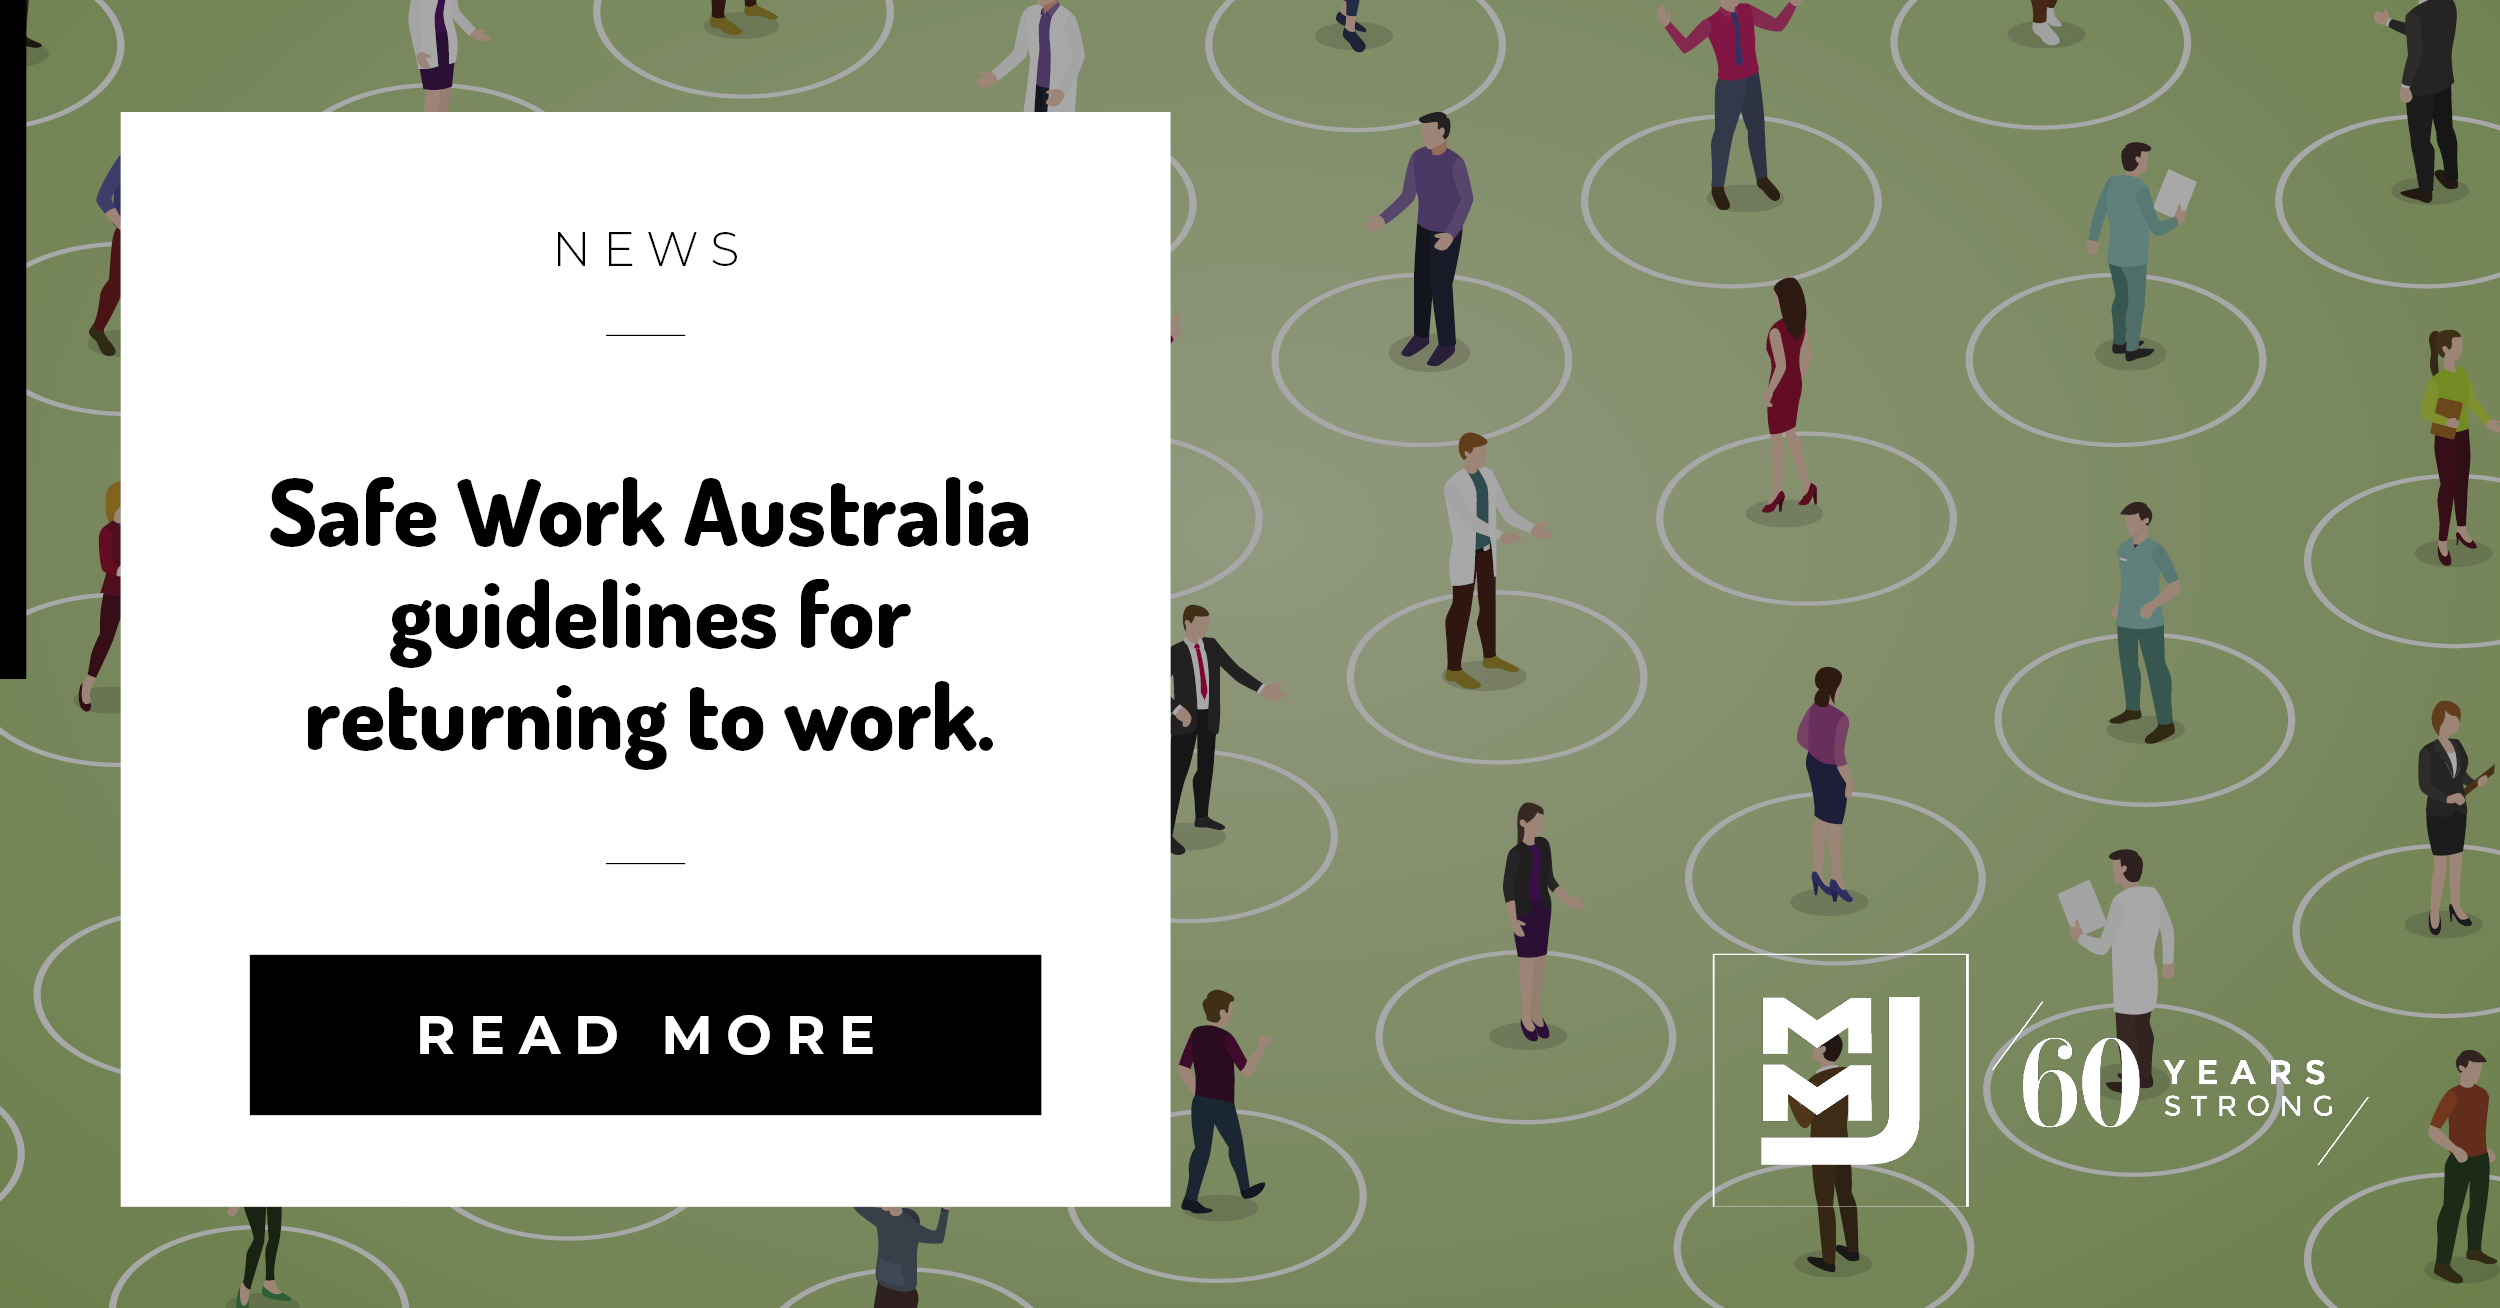 Safe Work Australia guidelines for returning to work